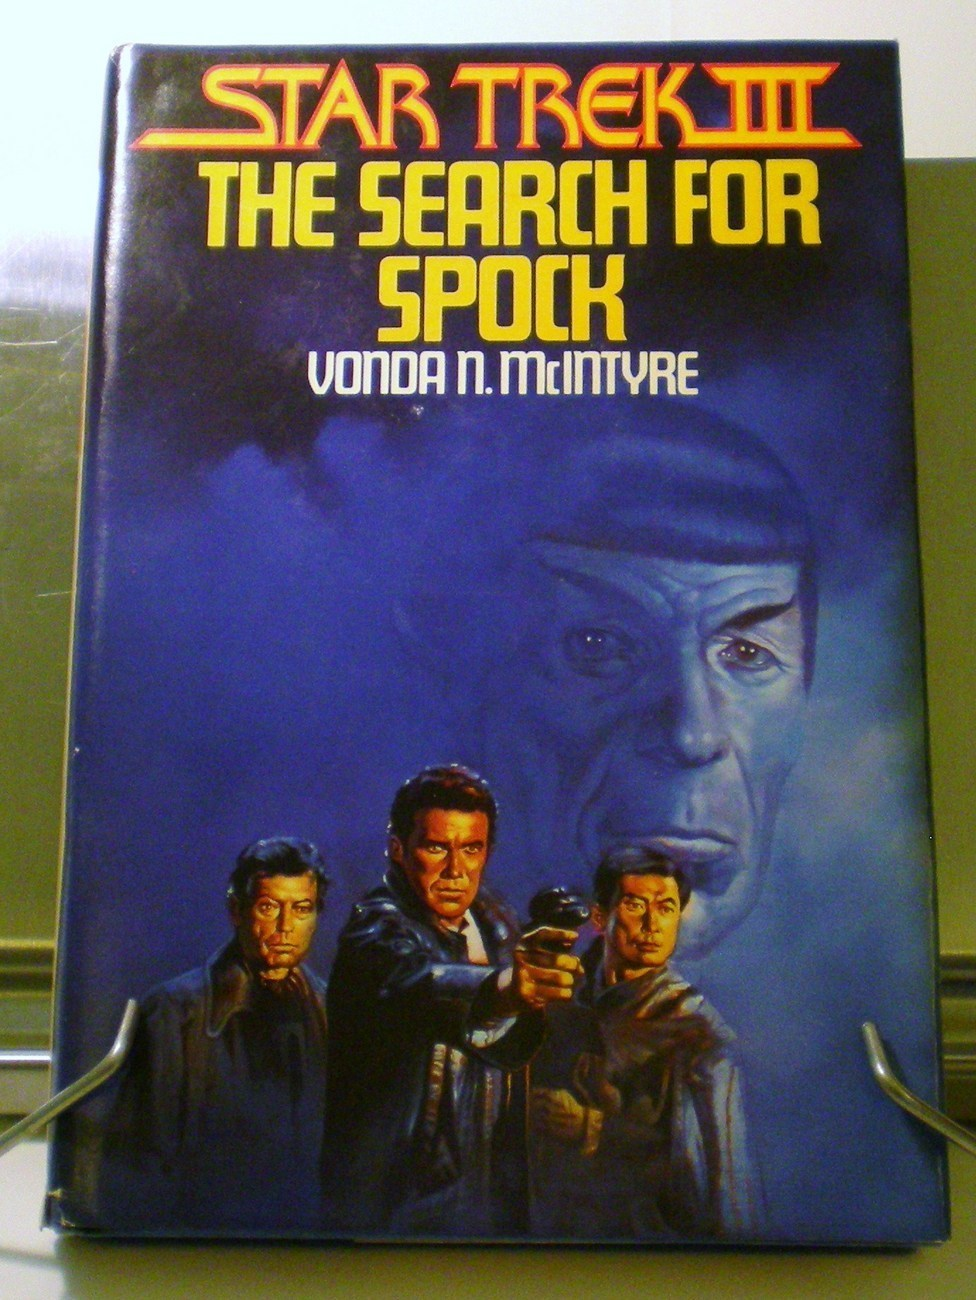 Star Trek III  The Search for Spock by Vonda N. McIntyre